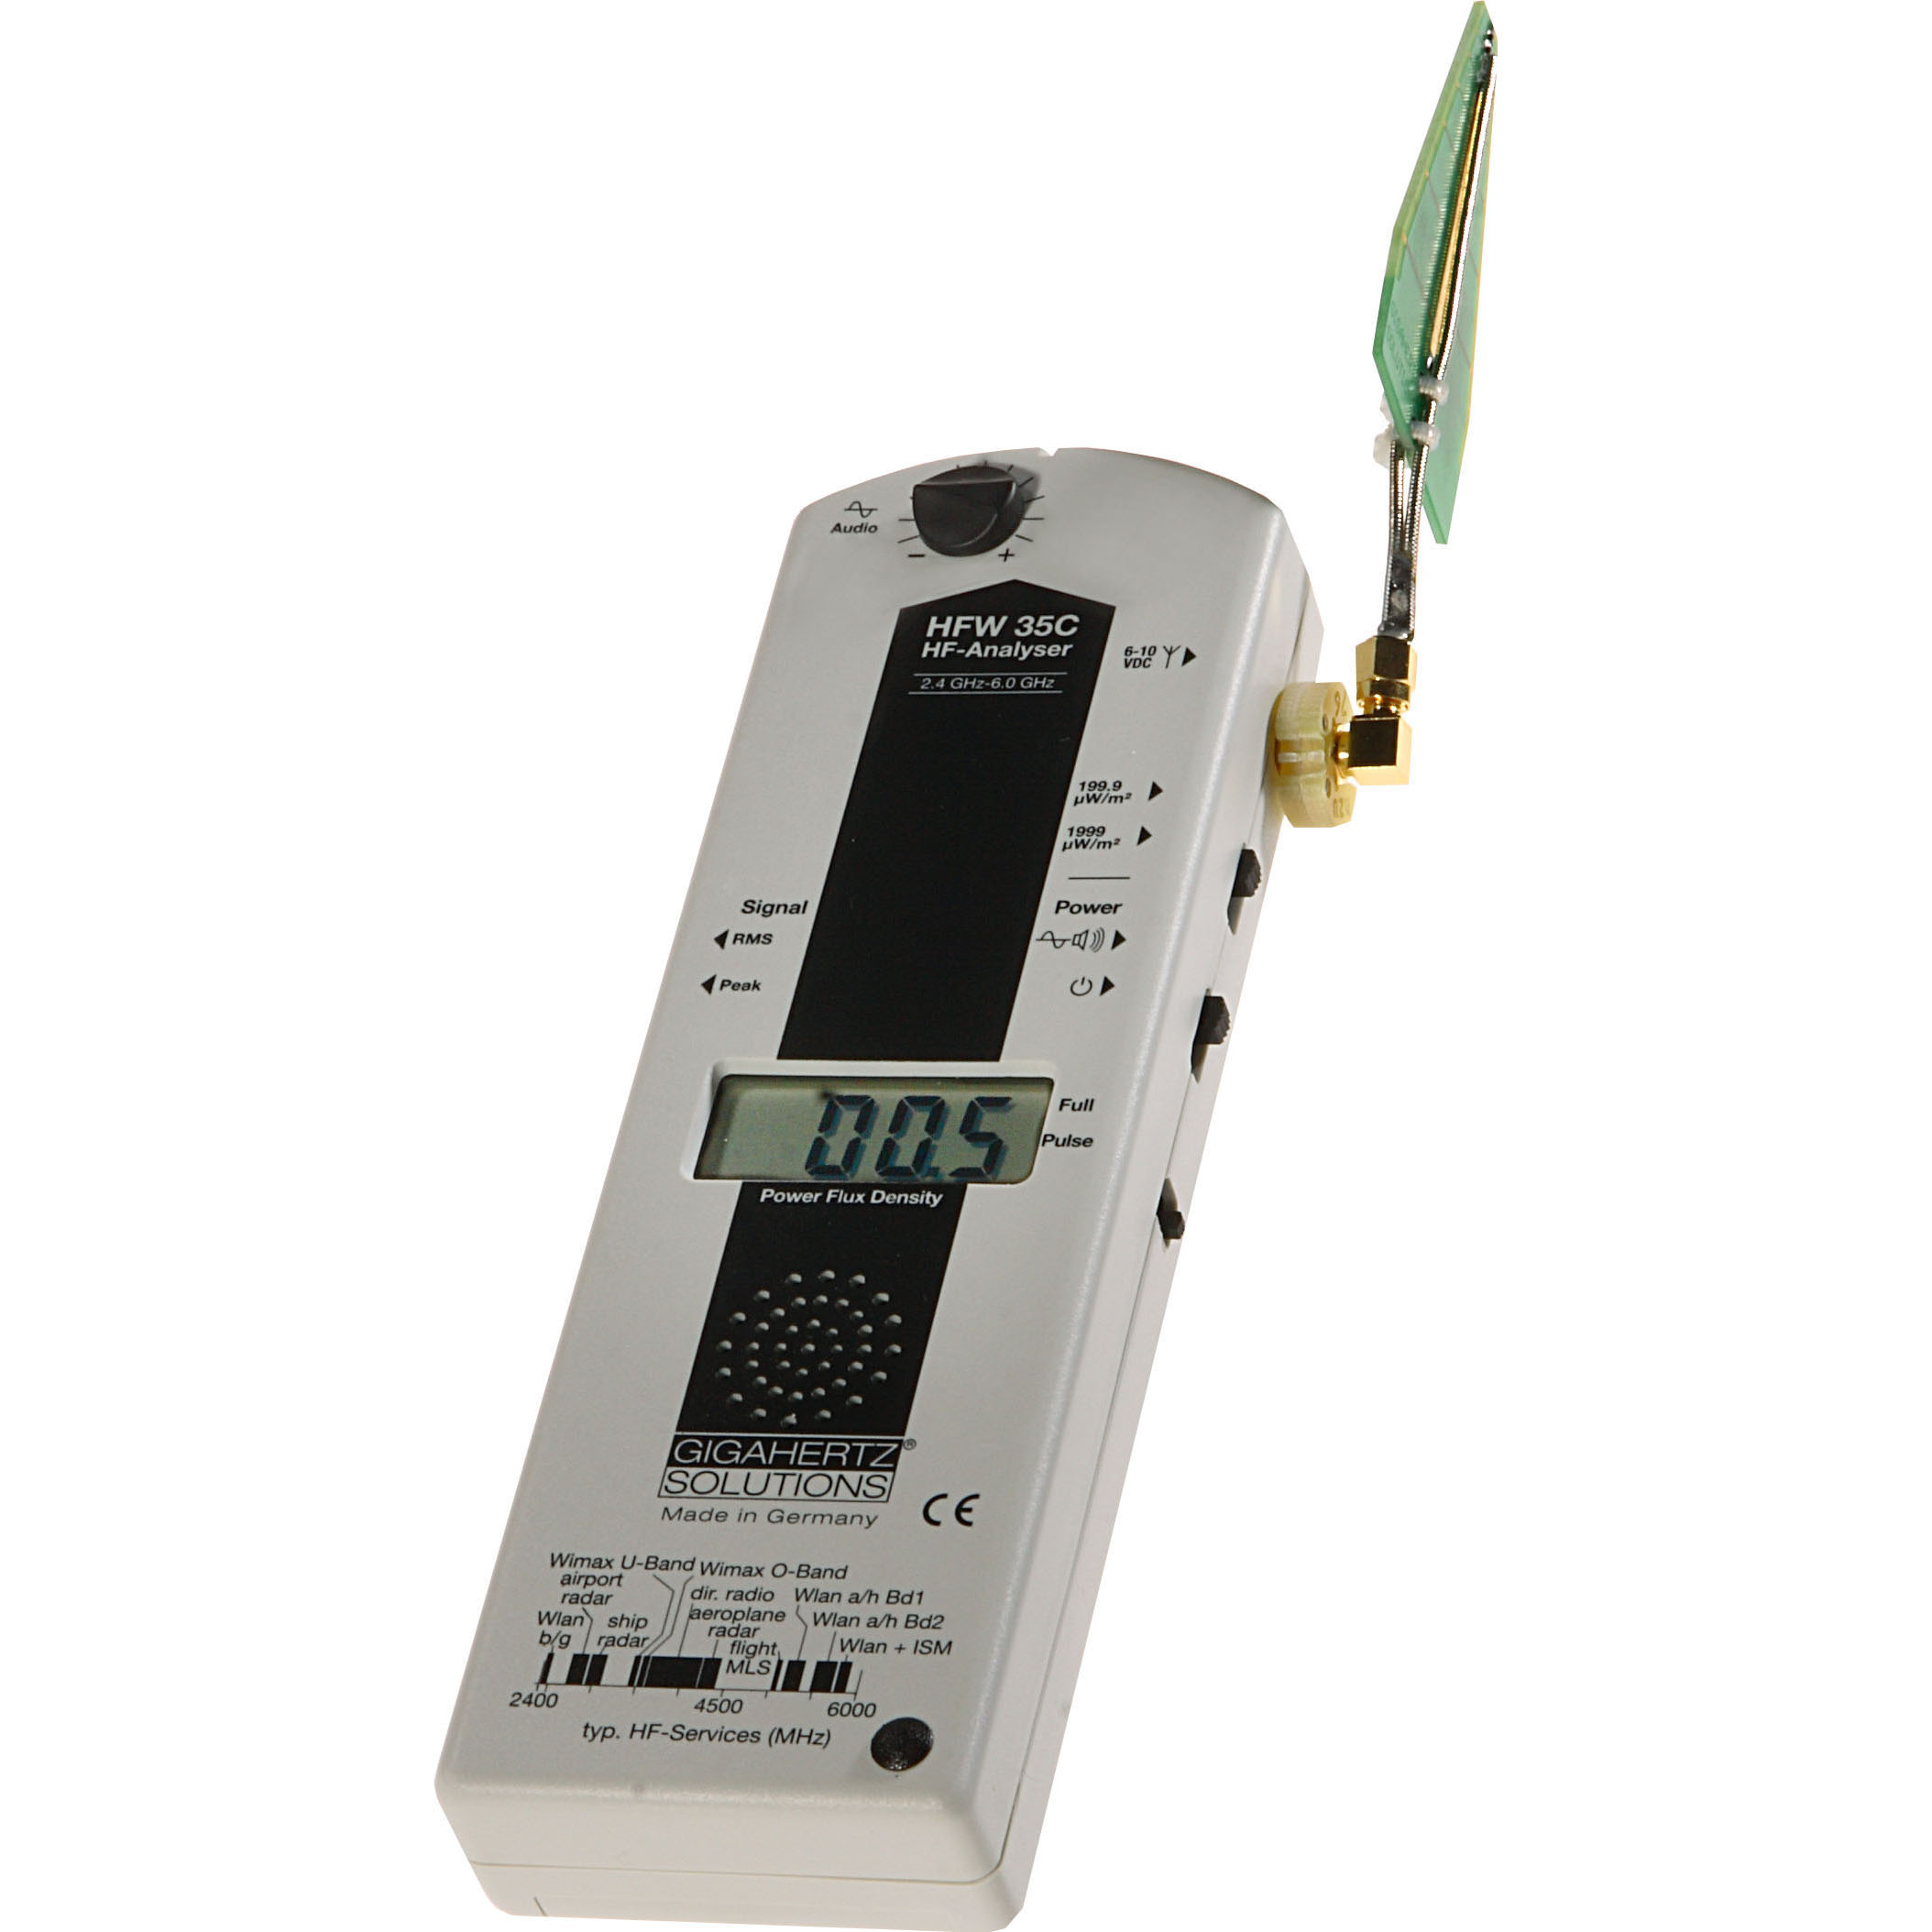 Wi Fi Meter For Measuring Higher Frequency Sources Of Radio 24 Ghz Field Strength Circuit With Optional Amplifier